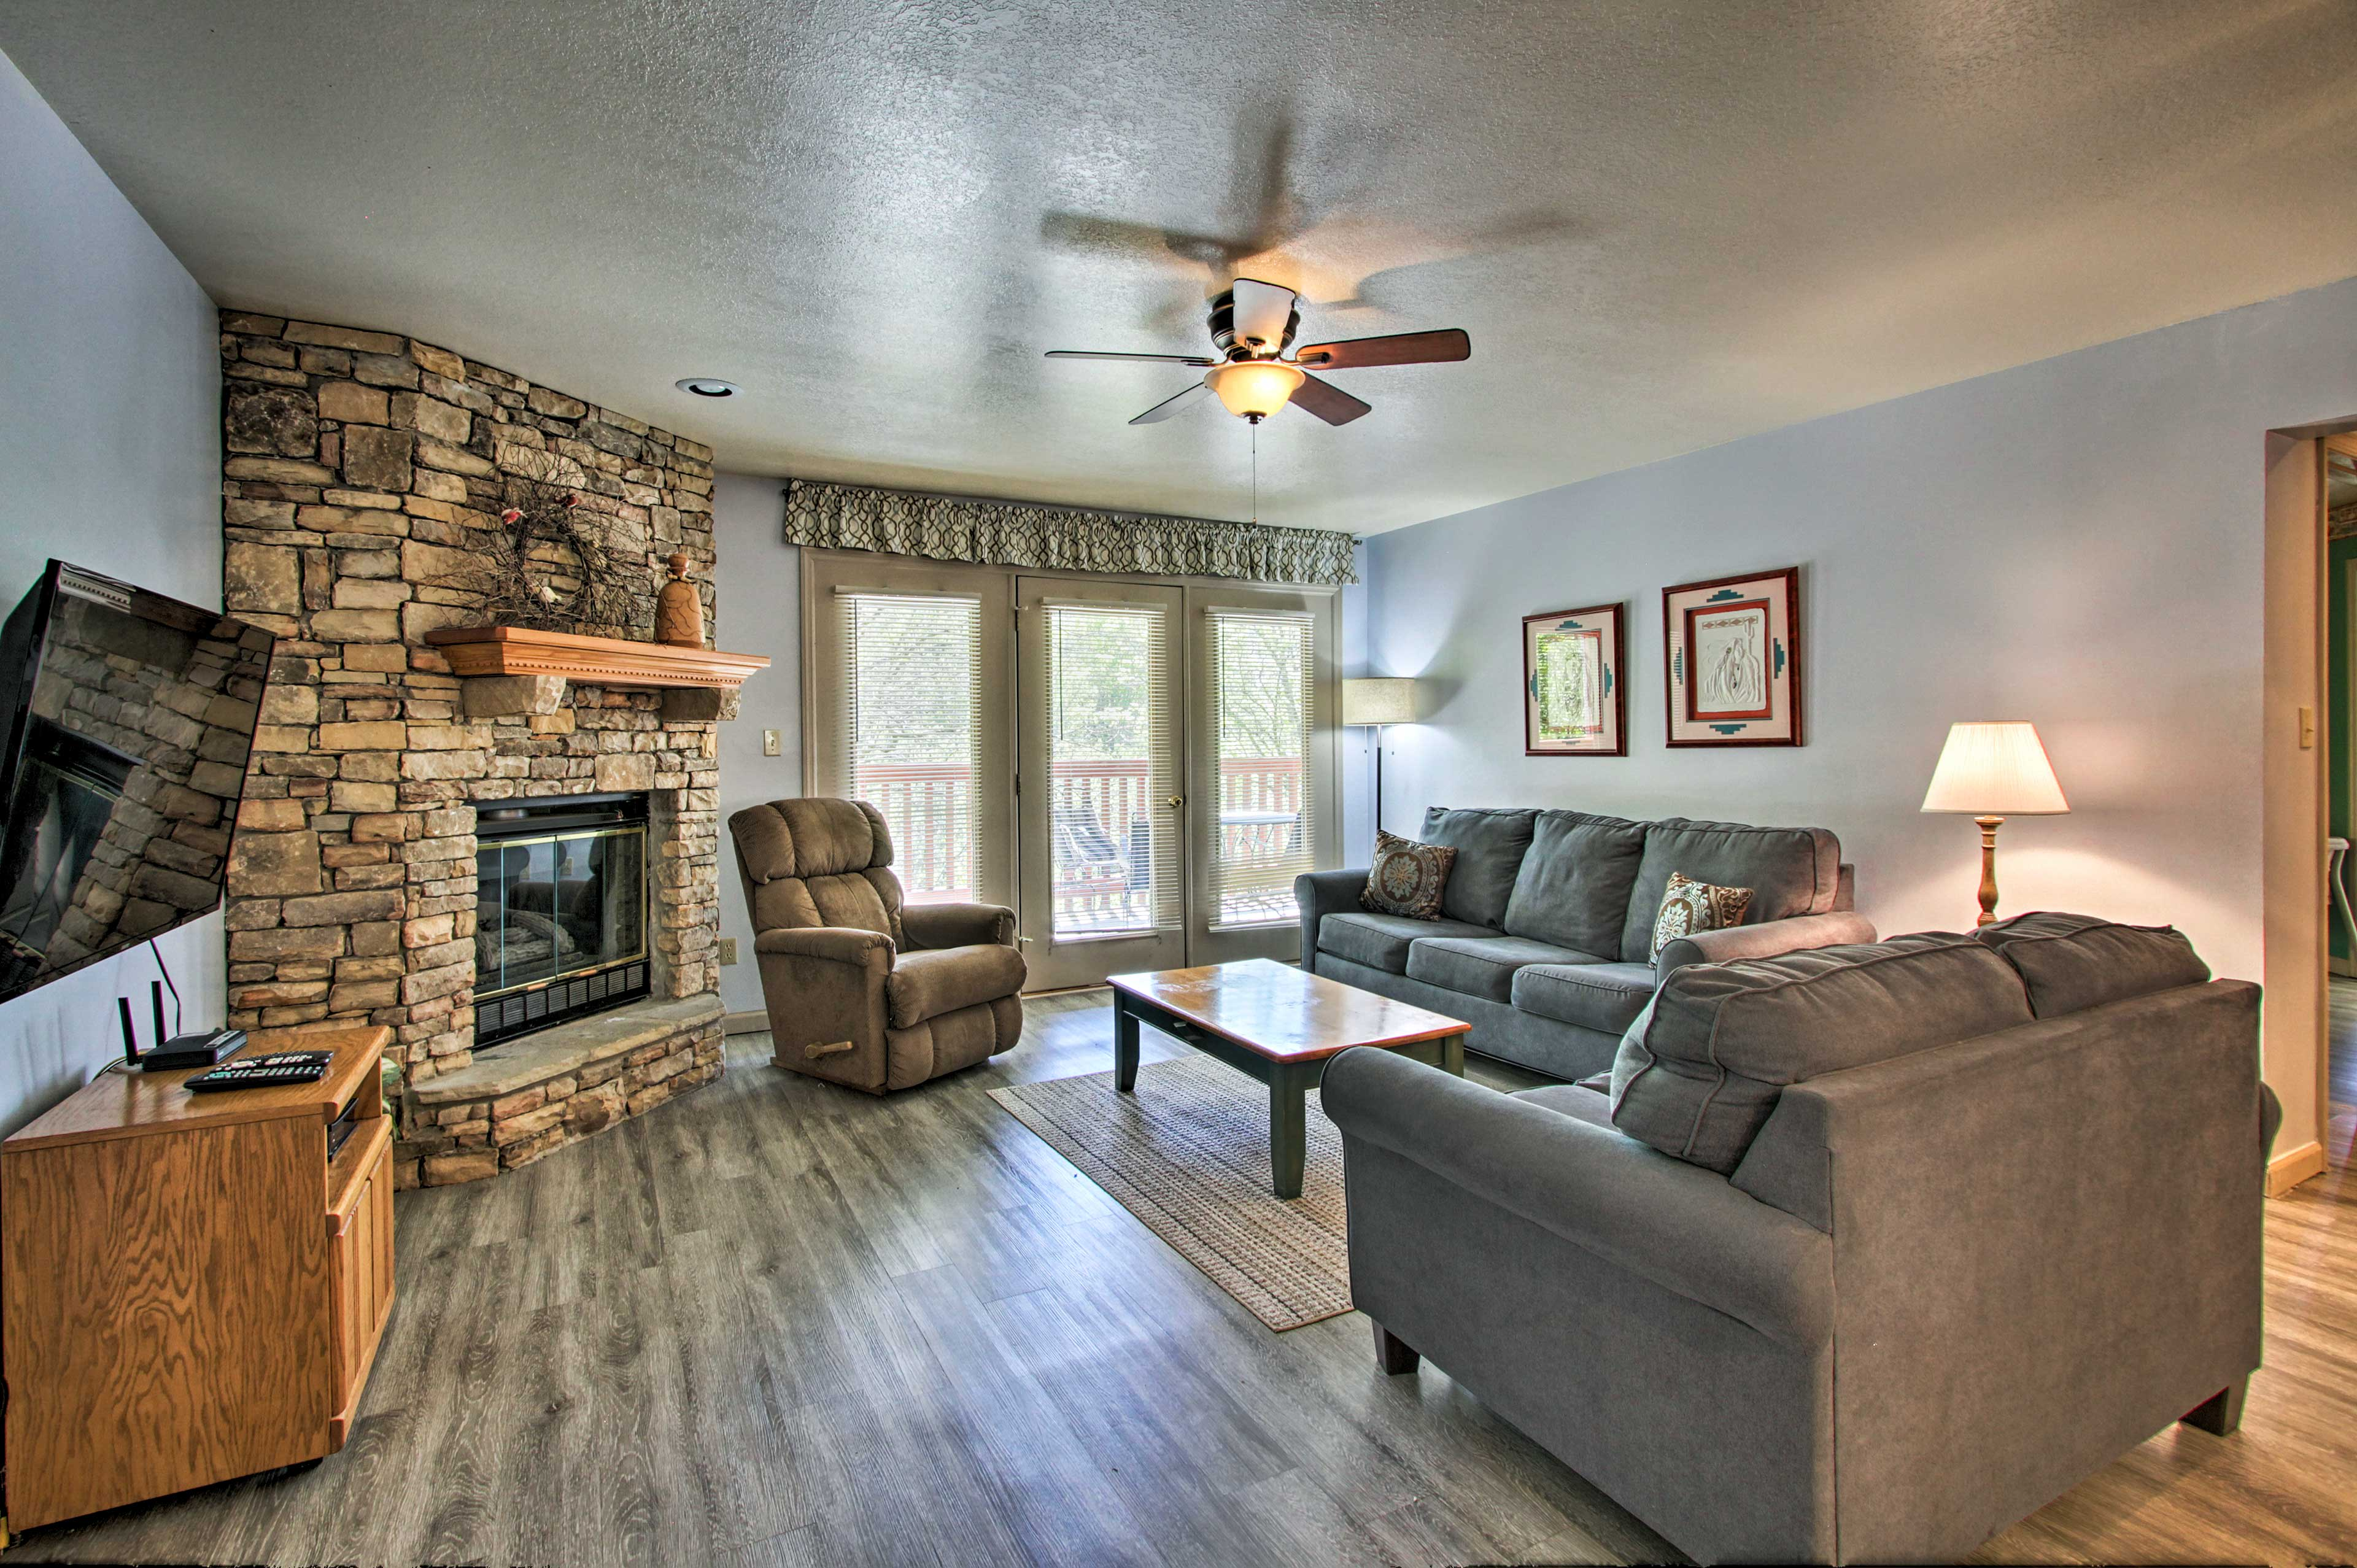 The interior features hardwood floors, a gas fireplace and an open layout.